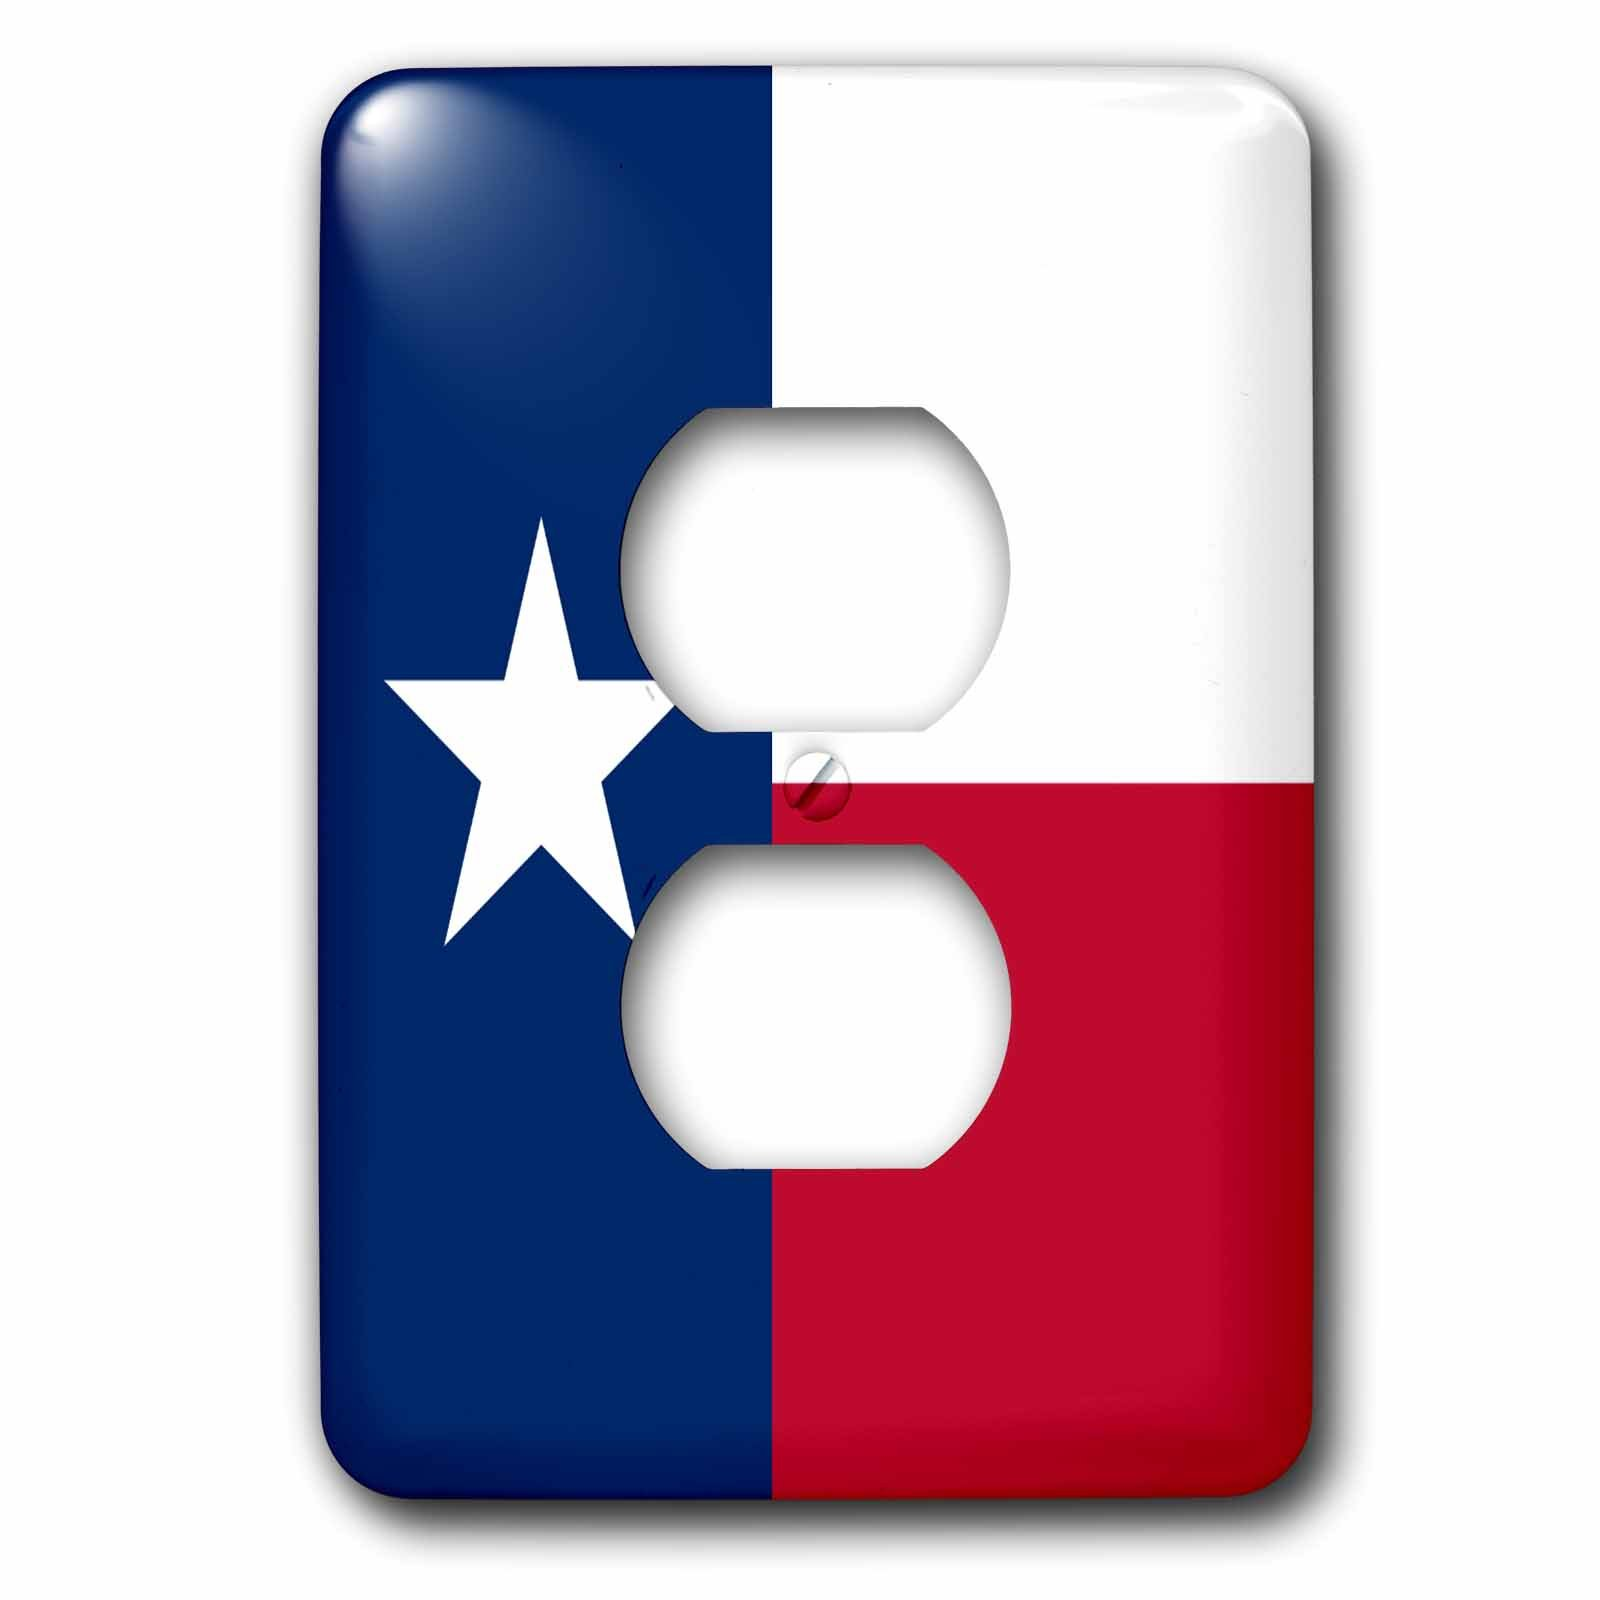 3dRose LLC lsp_158447_6 Flag of Texas Tx - Us American United State of America USA - Blue Red White - The Lone Star Flag 2 Plug Outlet Cover by 3dRose